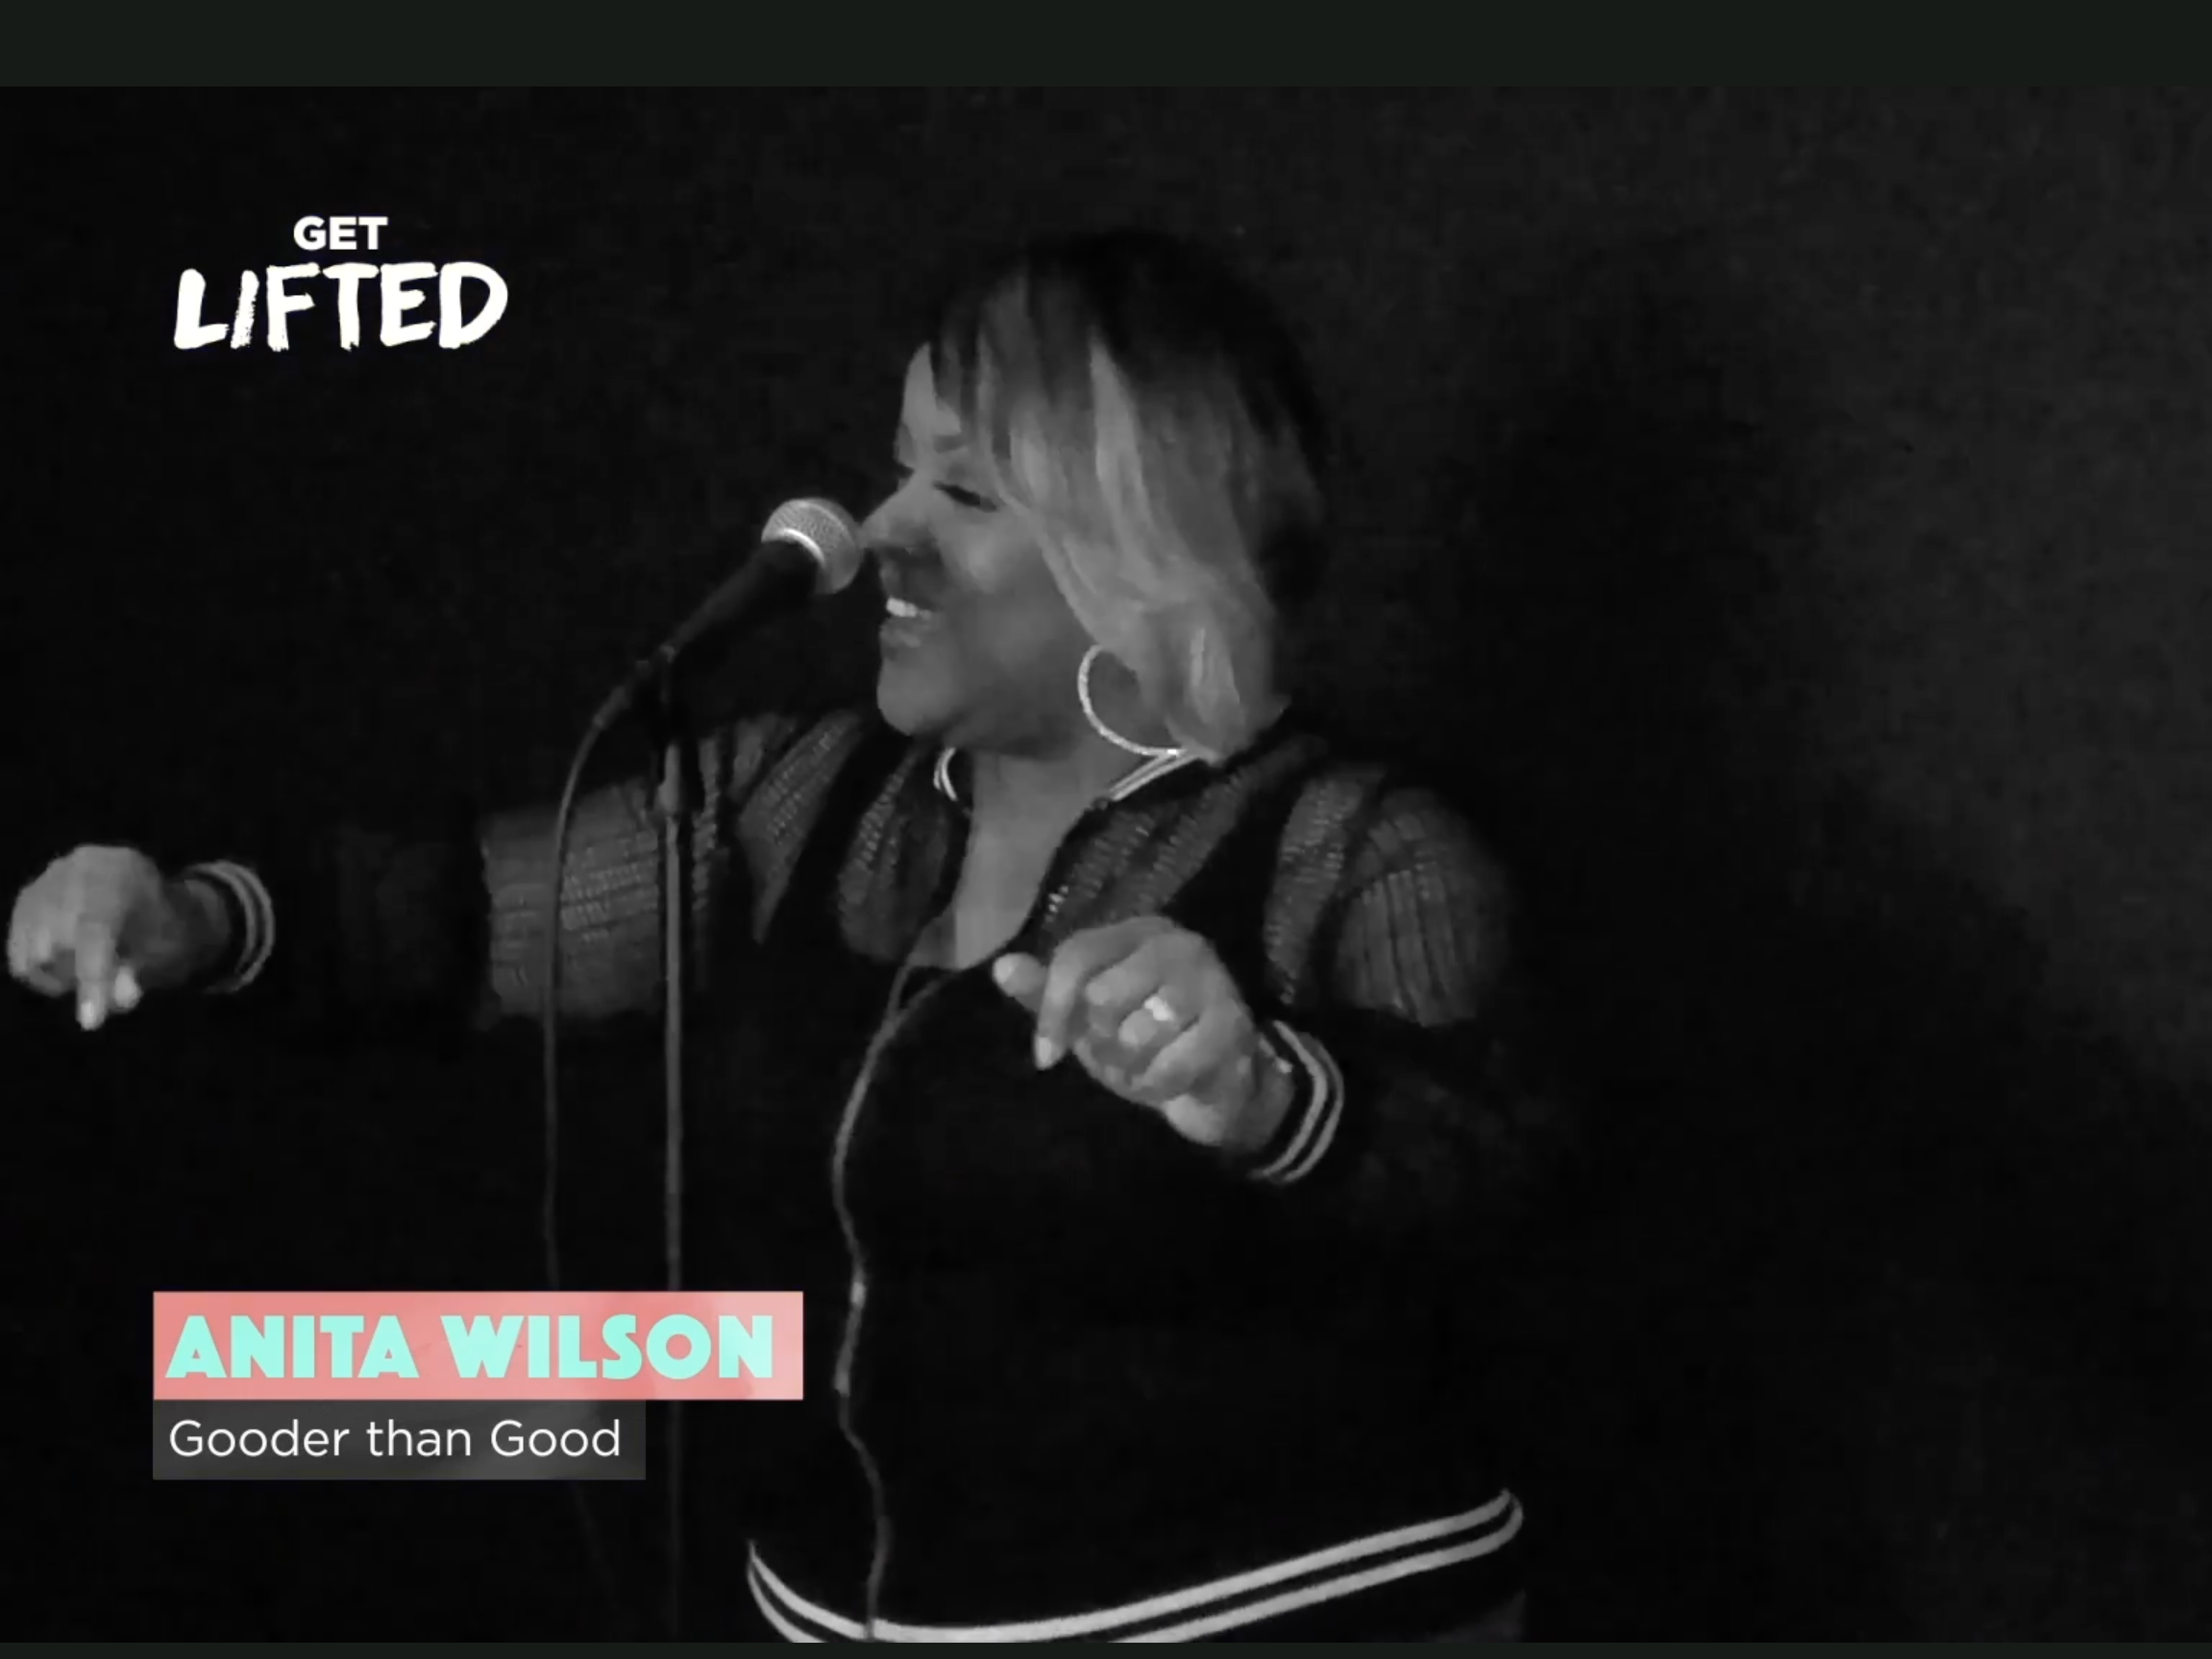 Anita Wilson Performance for Get Lifted